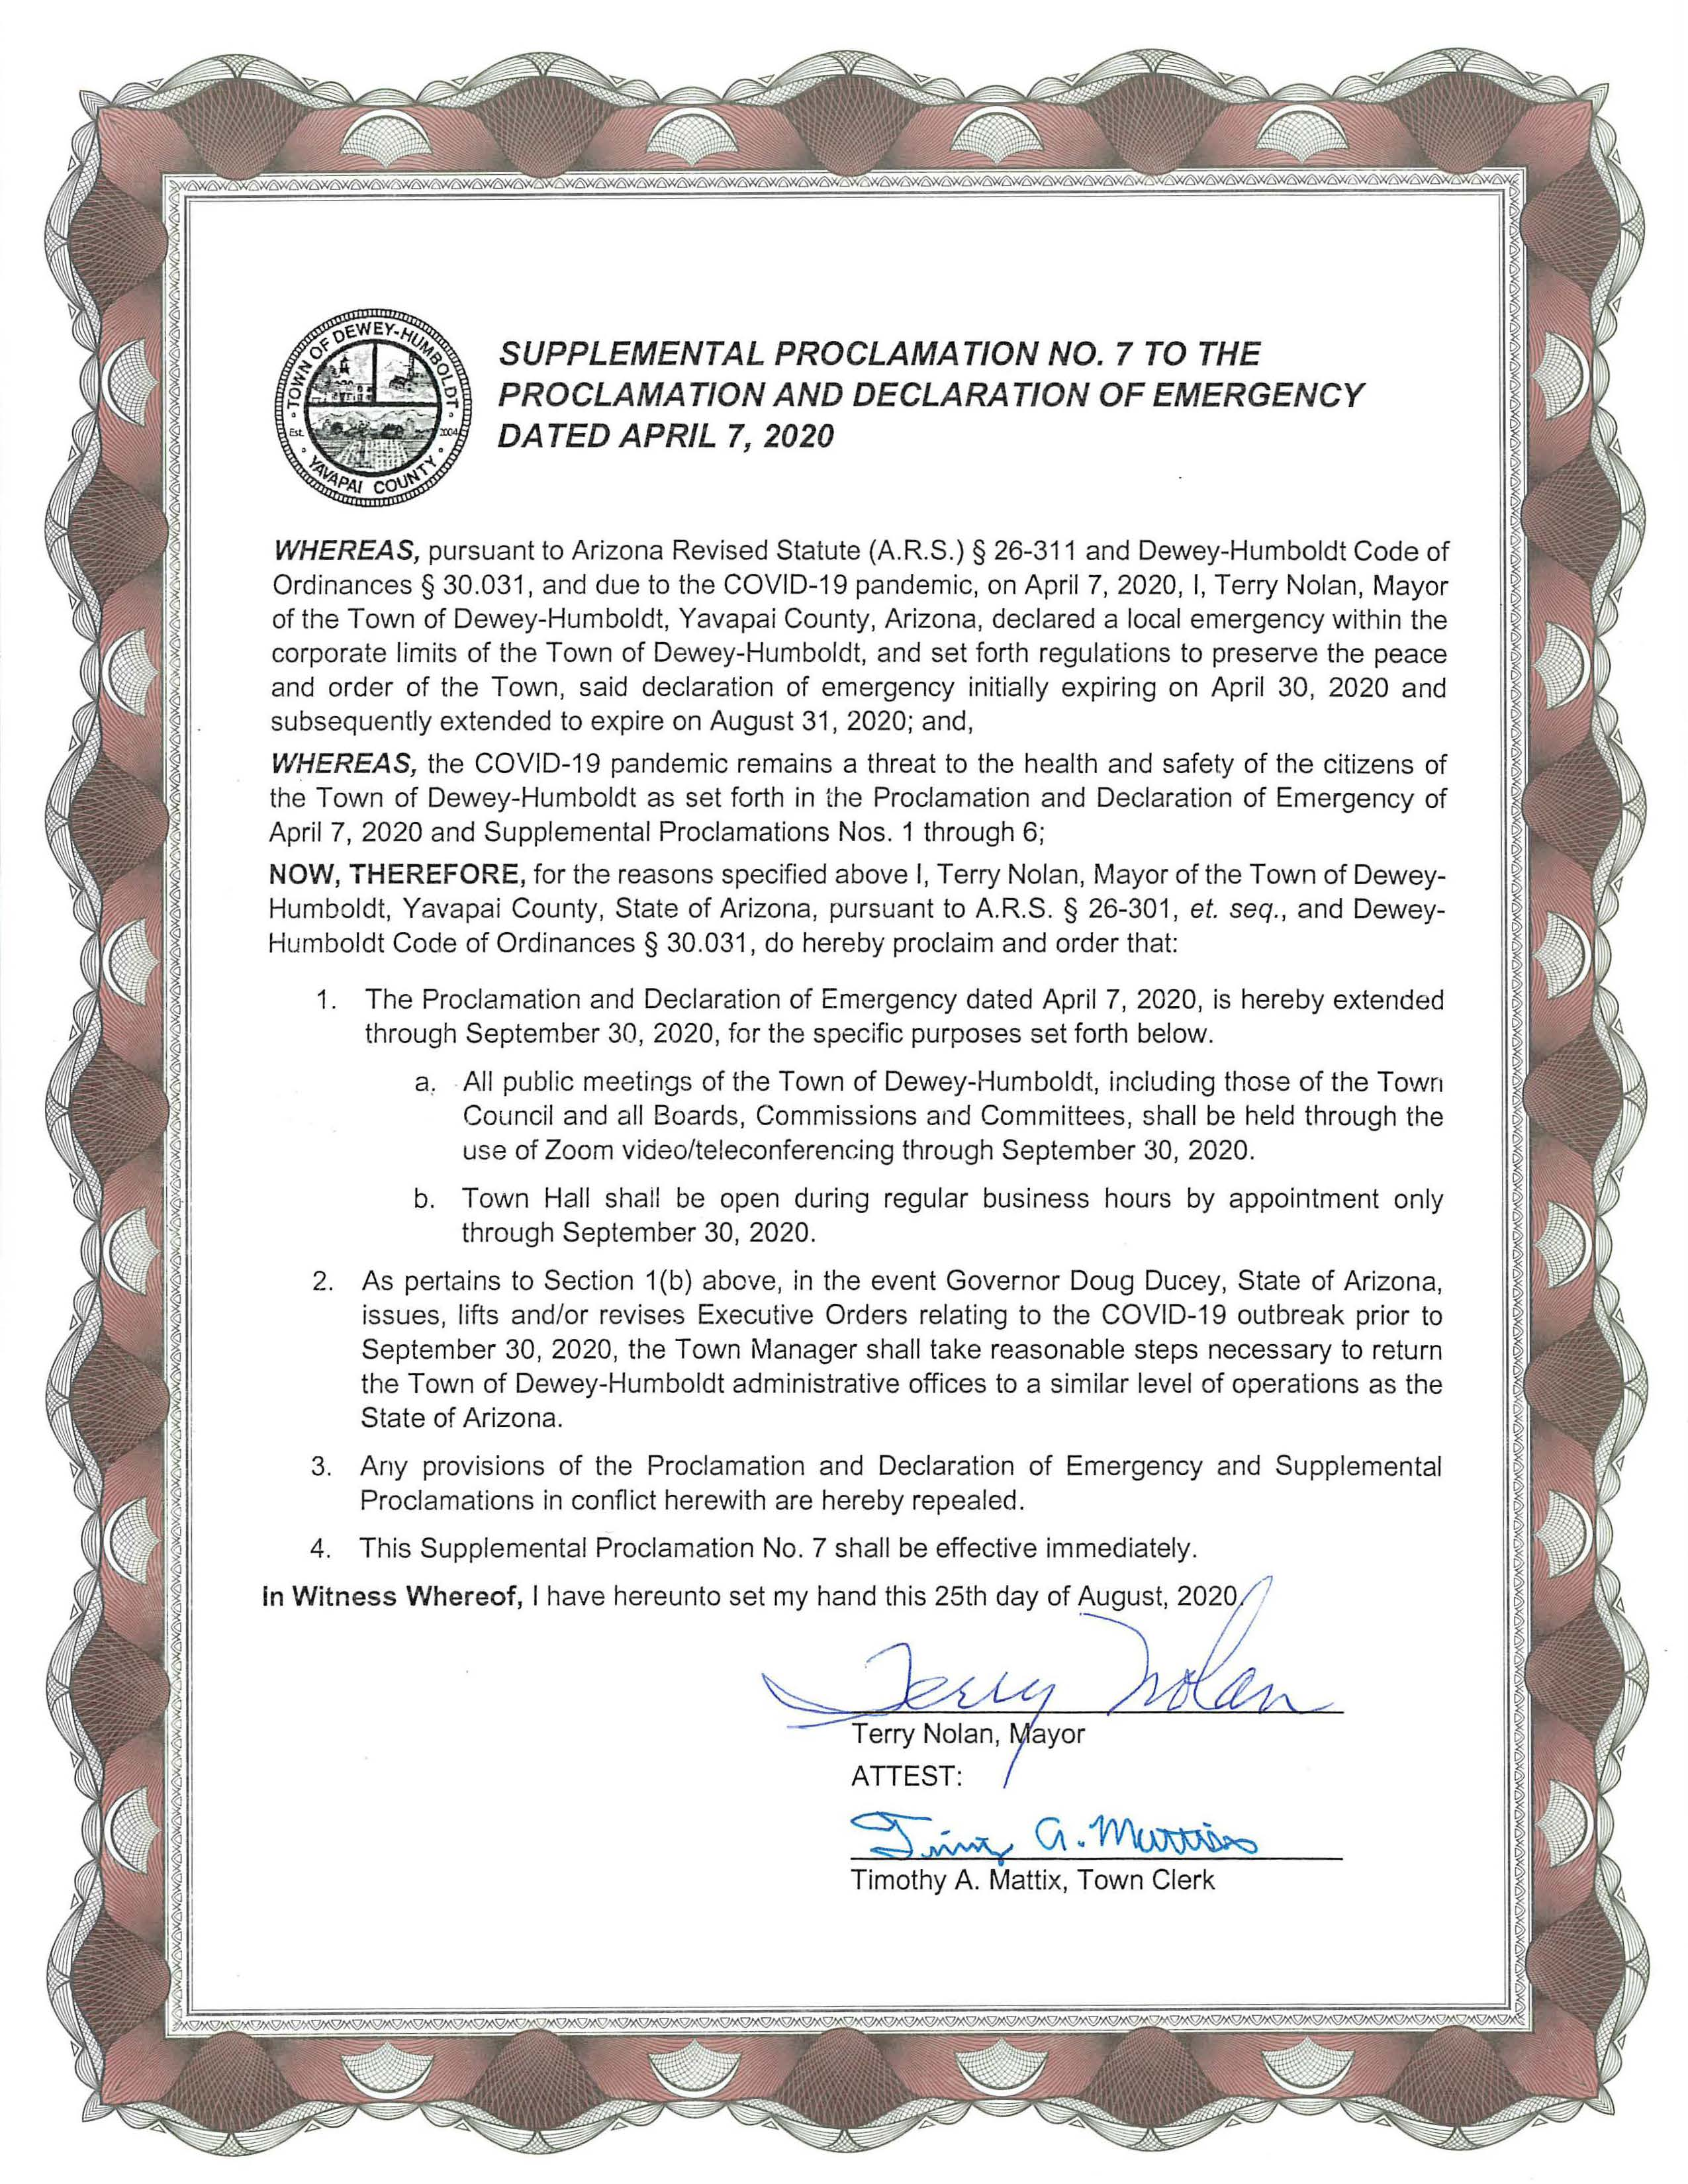 Supplemental Proclamation 7